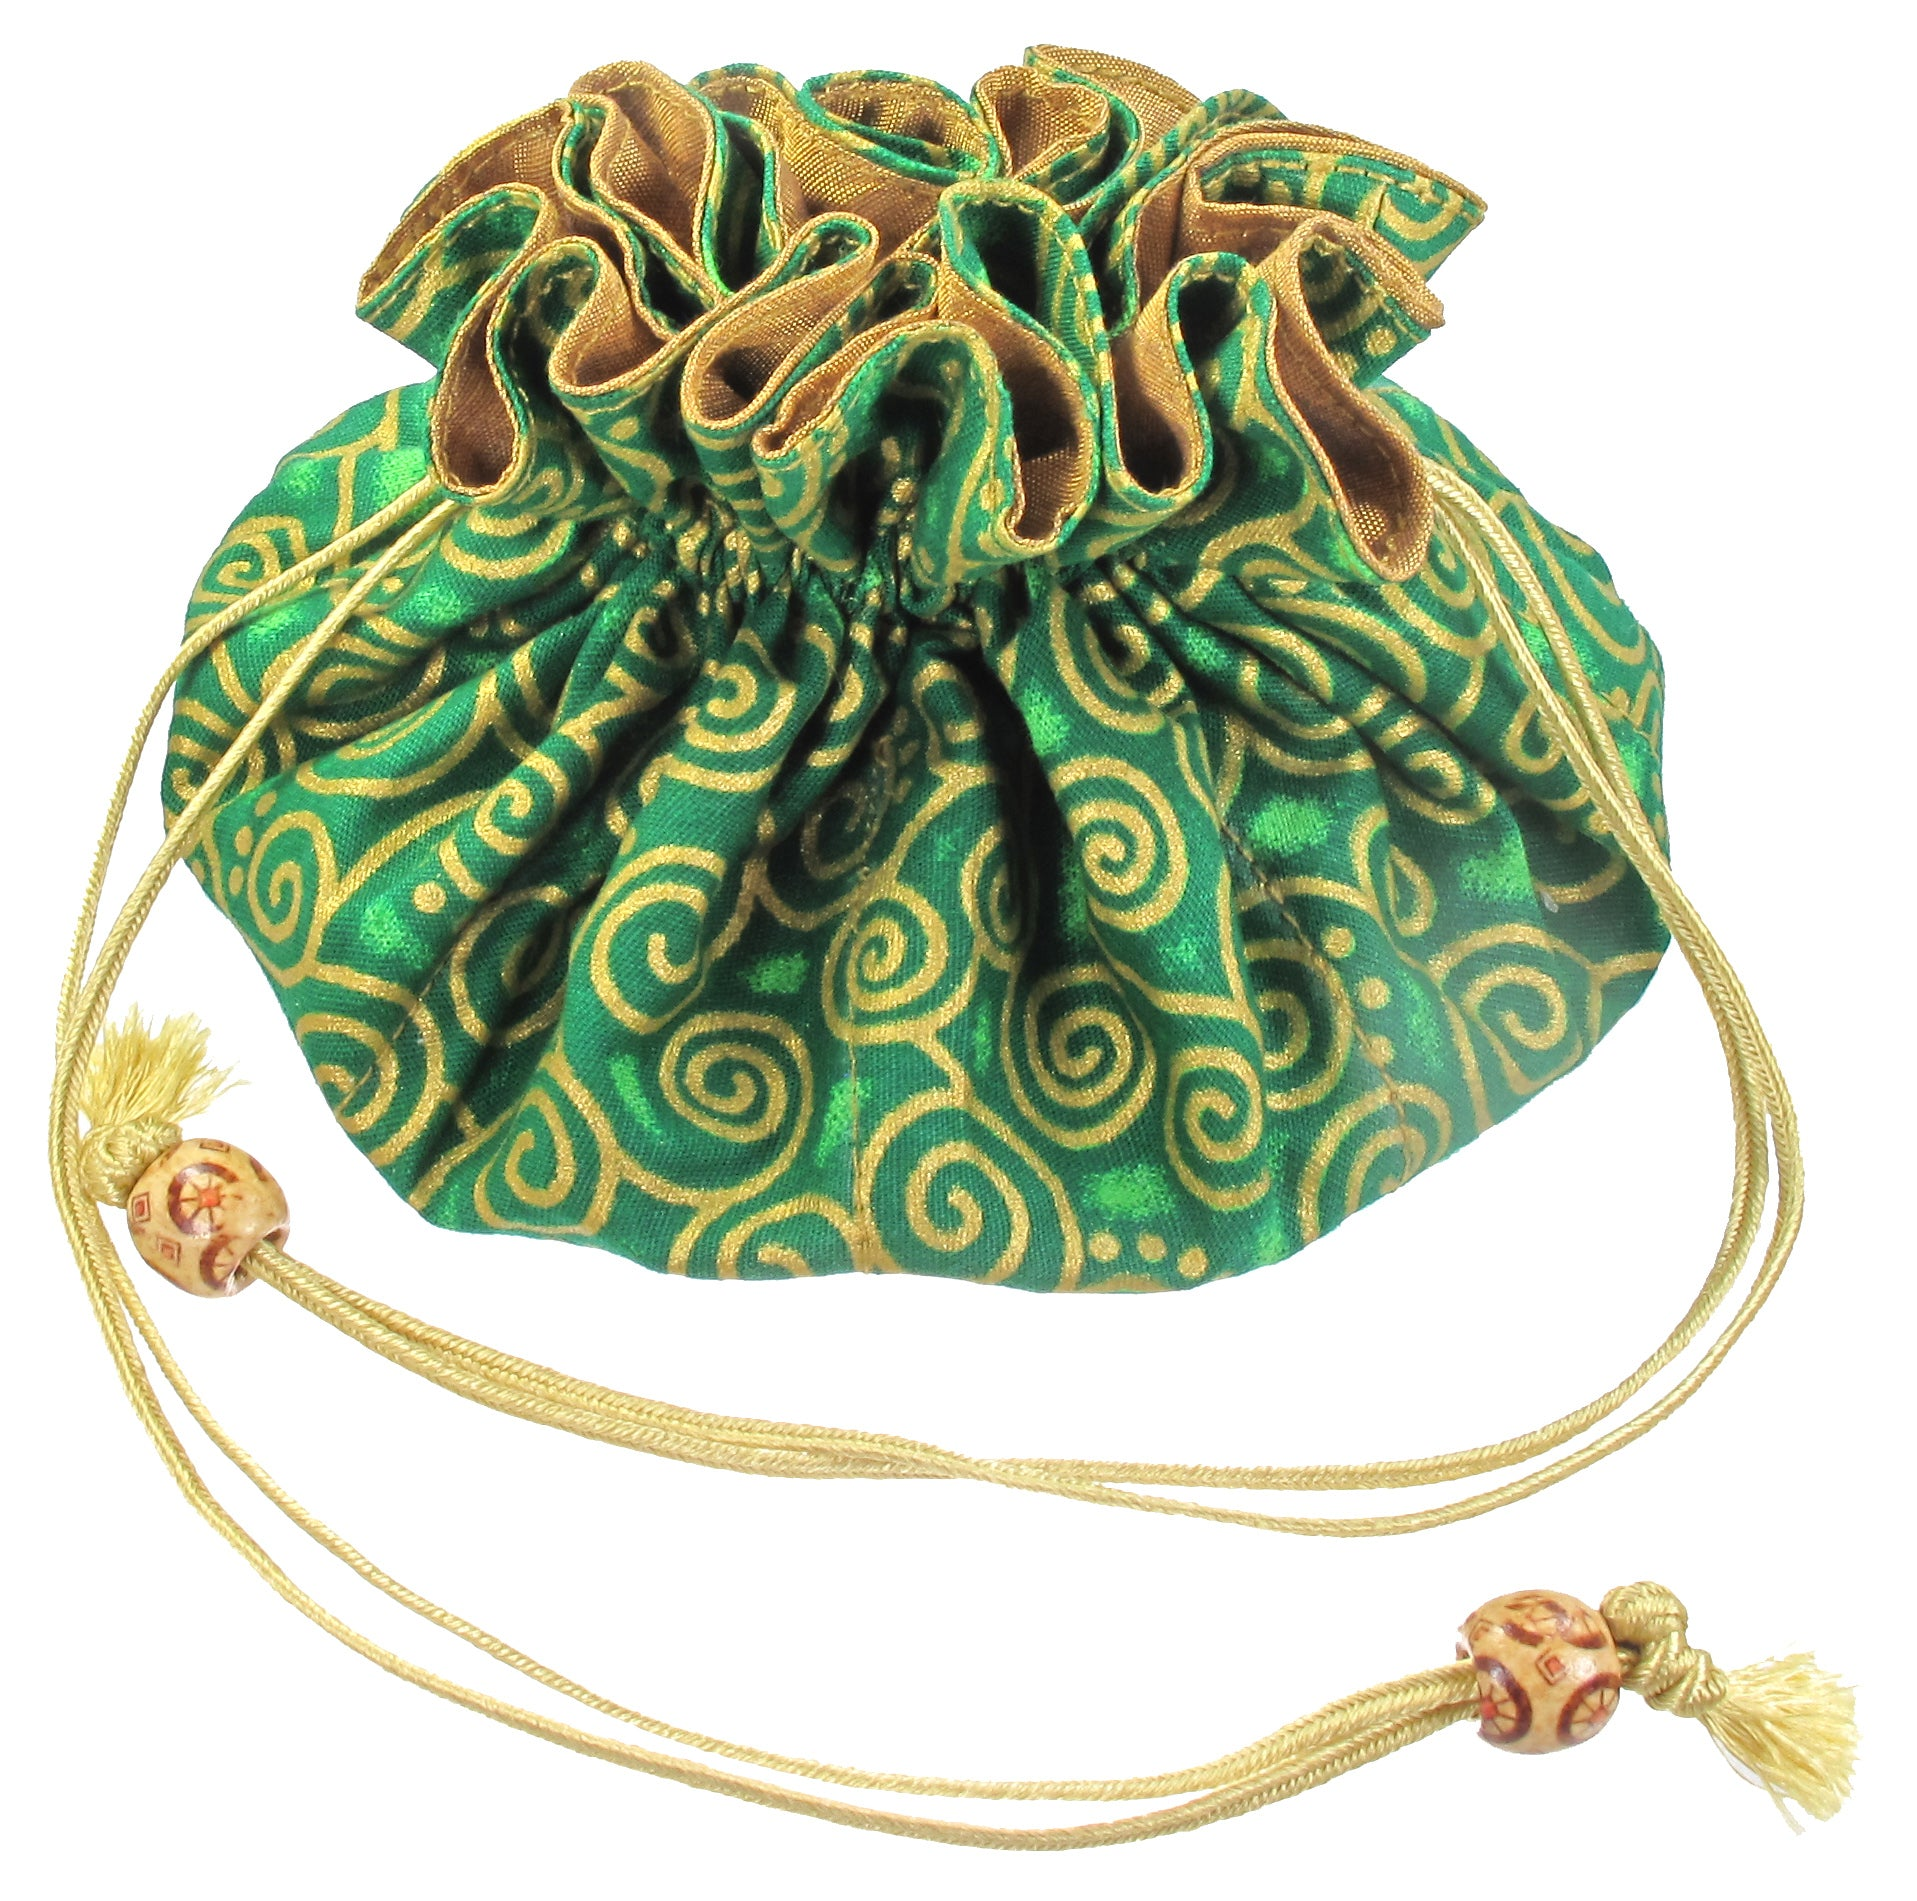 Handmade Drawstring Jewelry Pouch, 8 Pockets, Cotton, Green with Gold Swirls